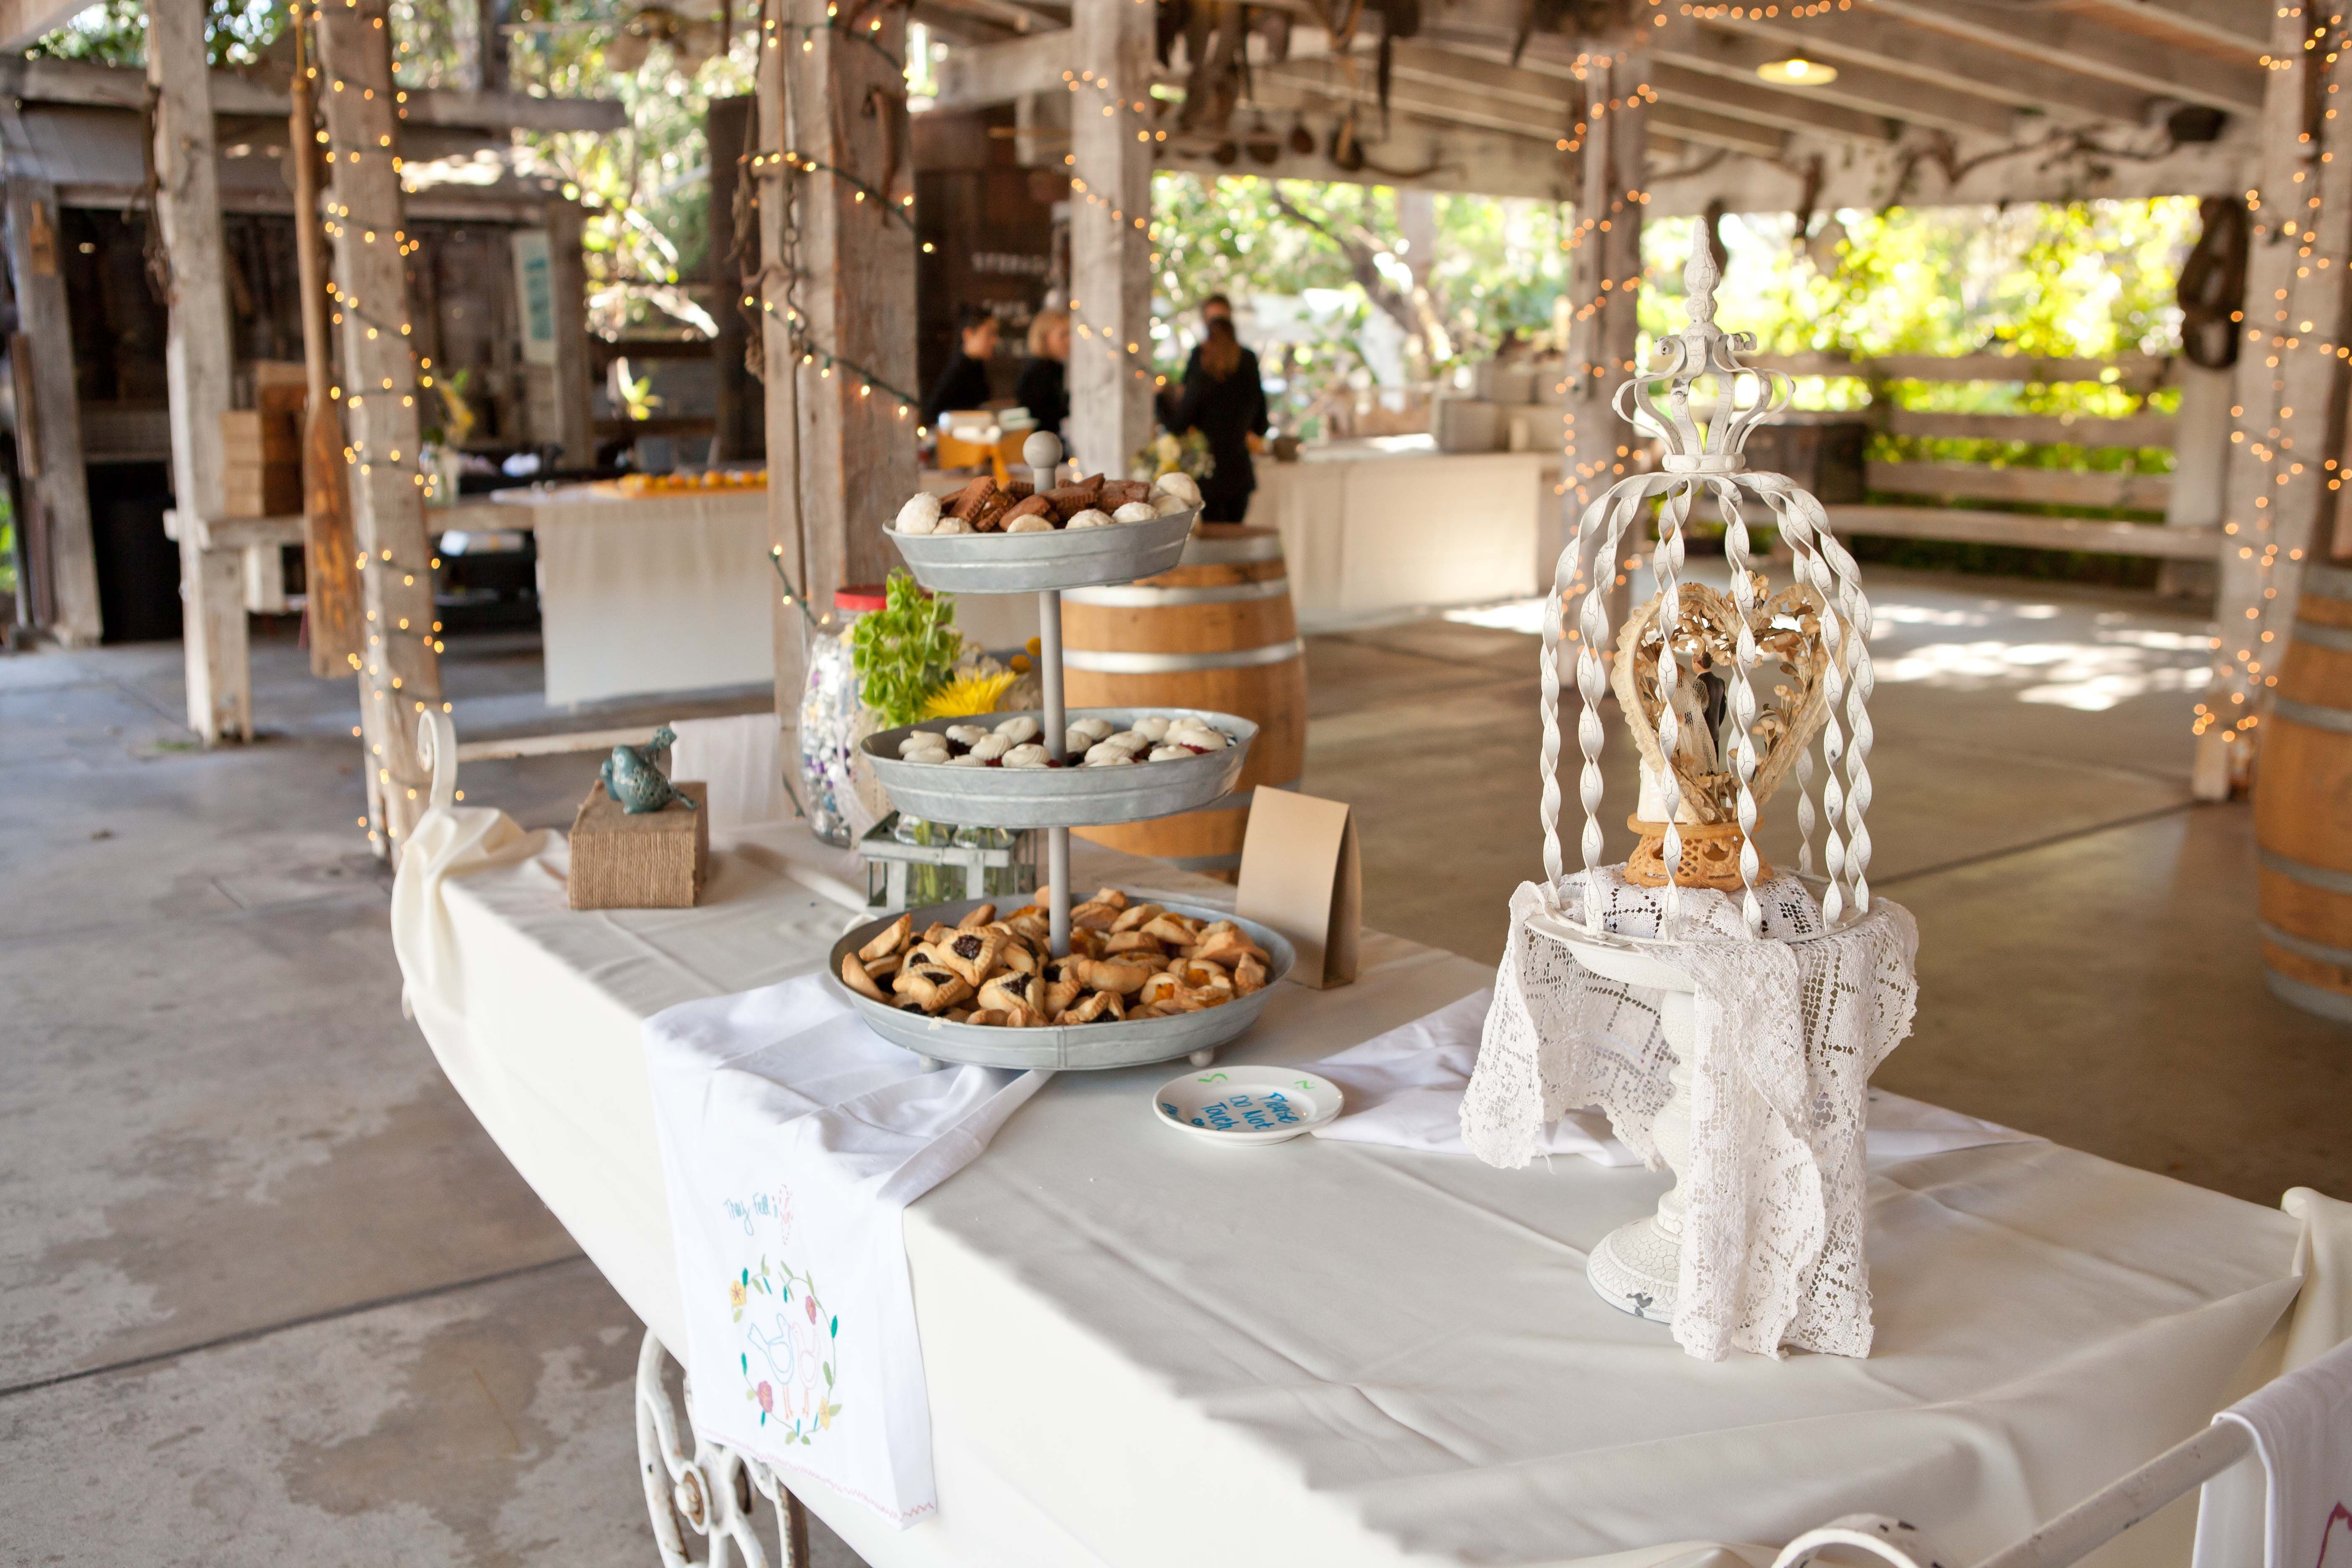 Briana and steves dessert table by nothing bundt cakes